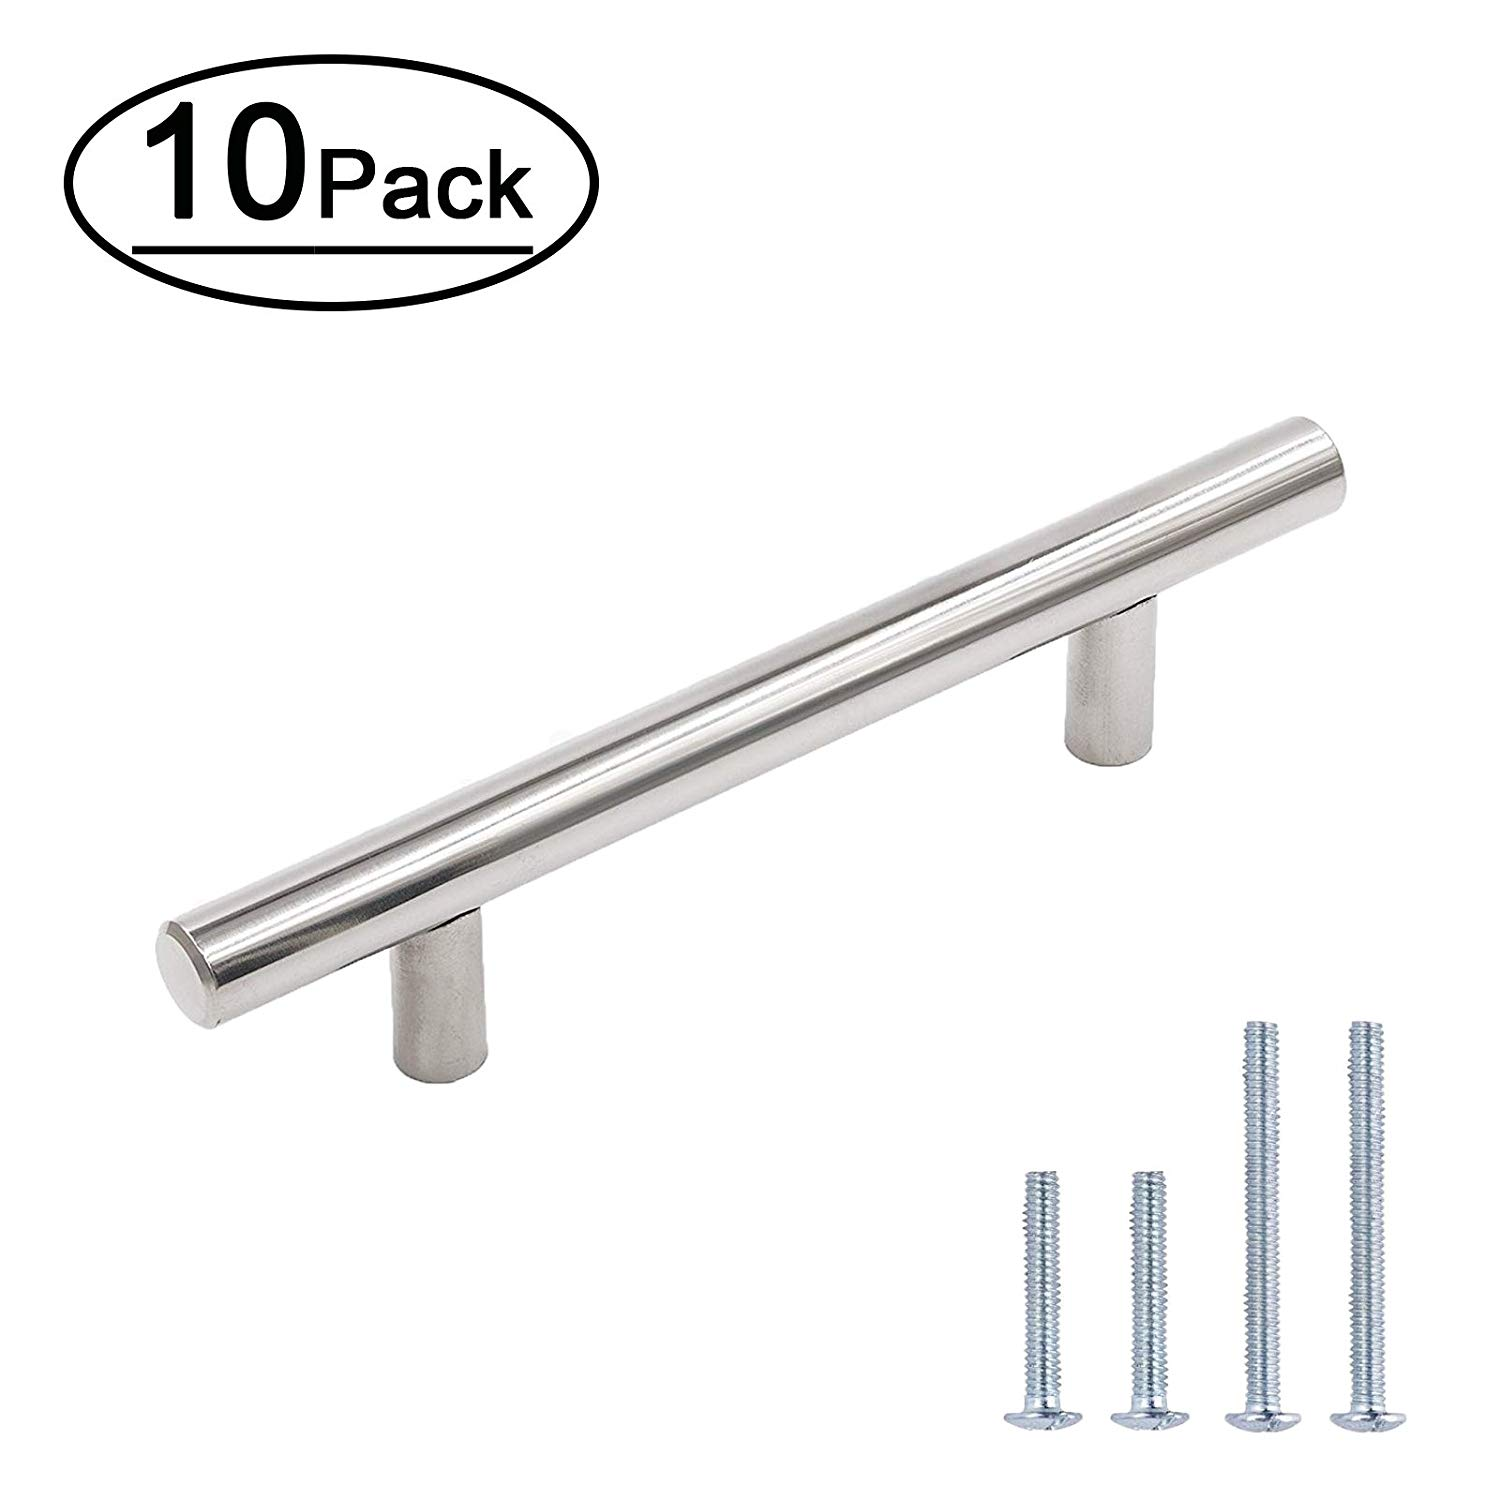 3.5 inch Drawer Pulls Chrome Cabinet Handles and Knobs - LONTAN LH201CP90 Kitchen Cupboard Pulls Stainless Steel Hardware Handles 10 Pack